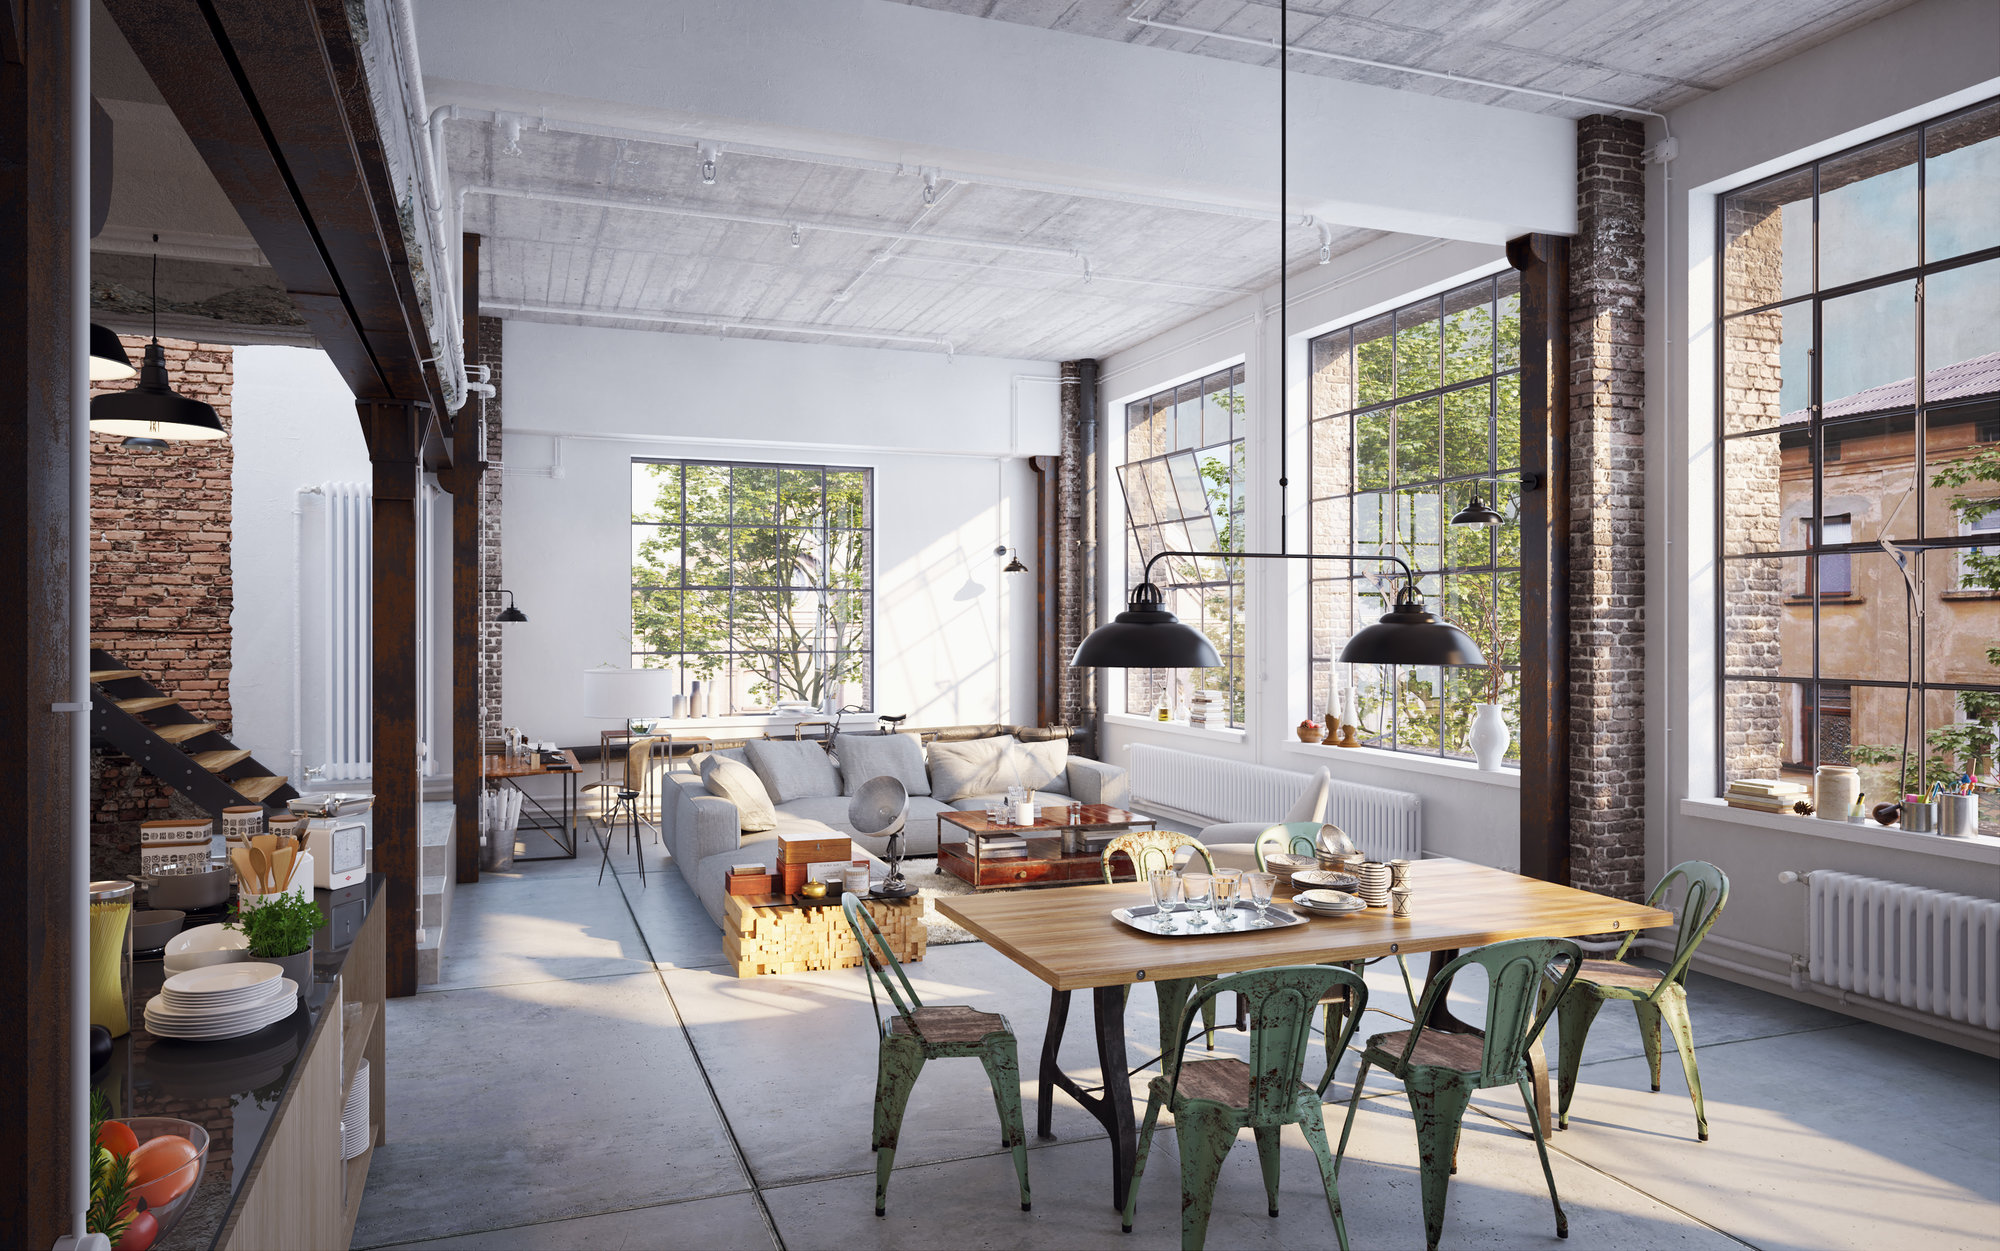 WickerParkLoft